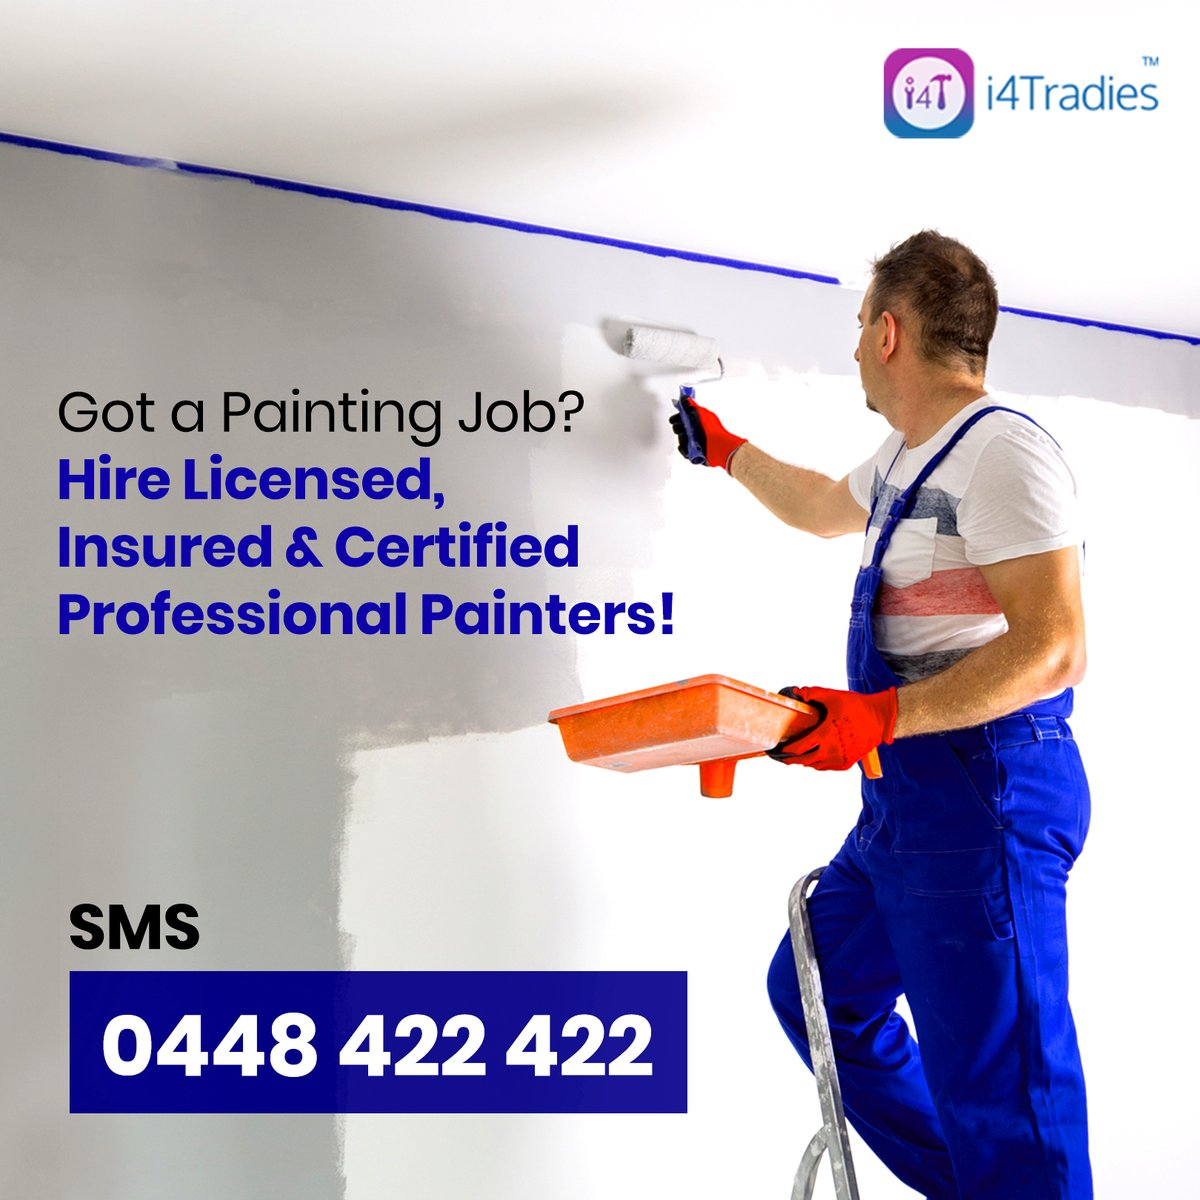 Truly professional and trusted tradies from Australia's leading painting associations! Hire with confidence! #Painters #CommercialPainters #Tradies #Australiapic.twitter.com/FbnwiahnTl